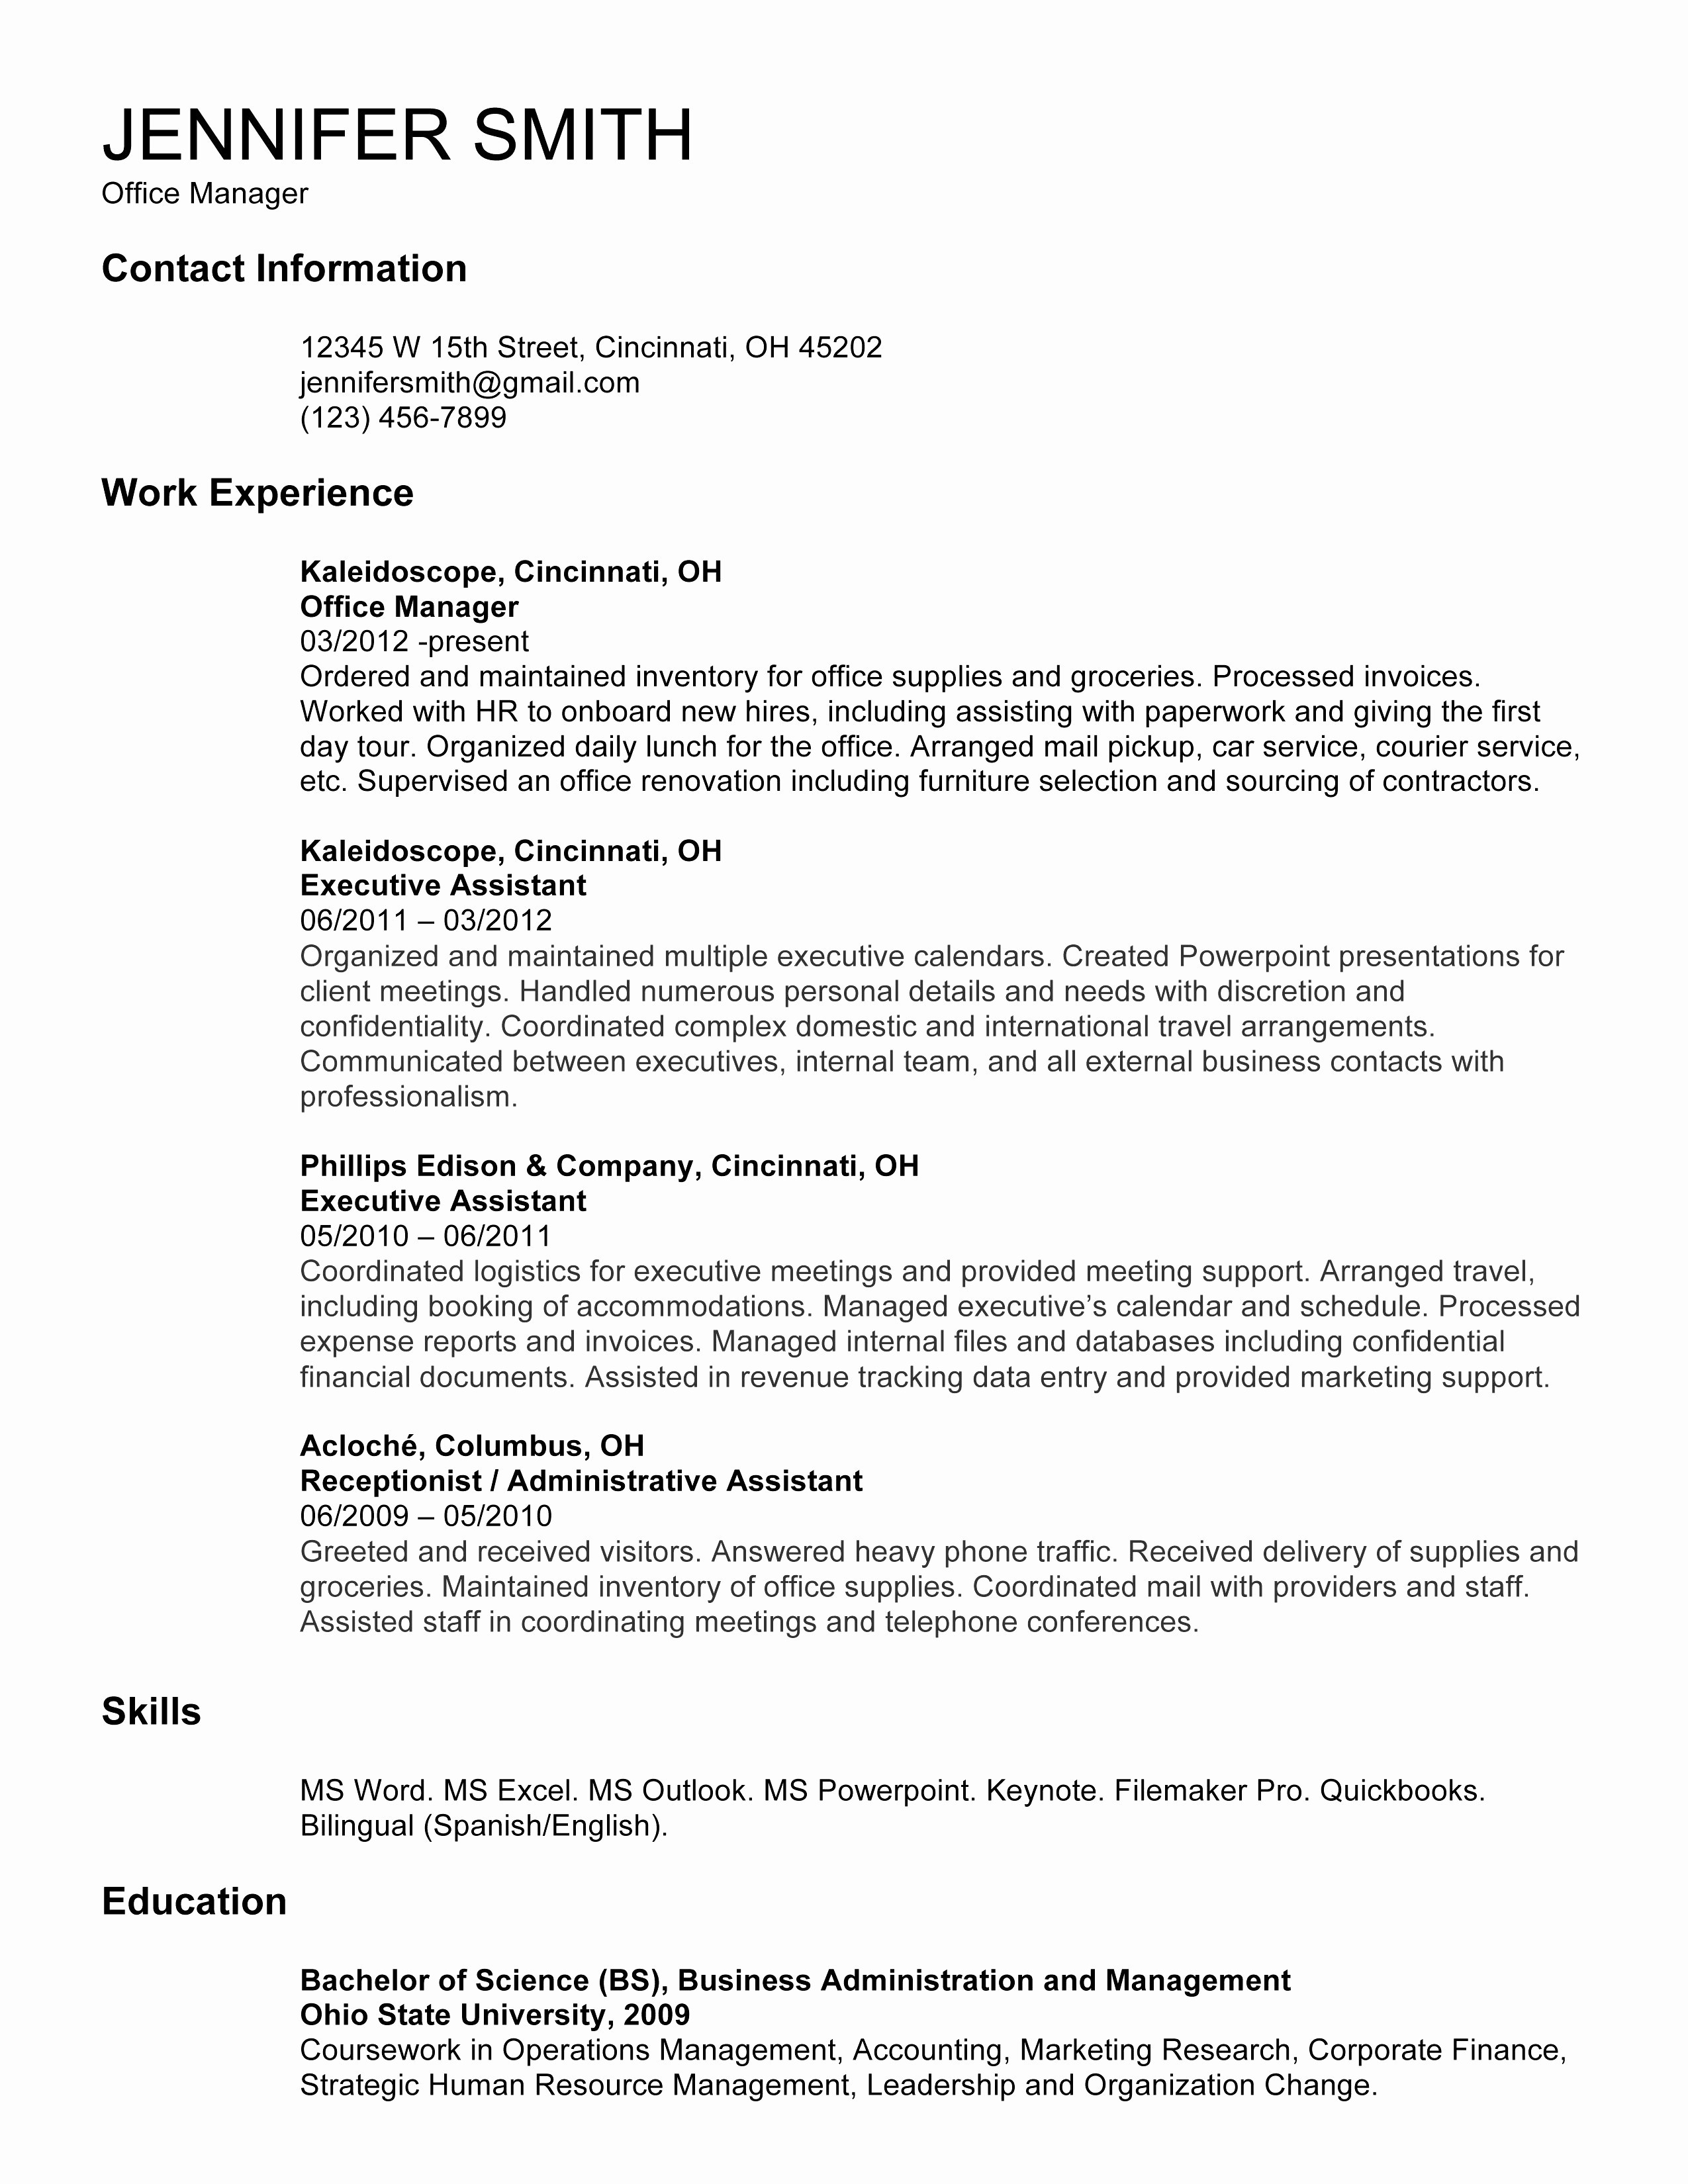 Resume Writing Services Boston - Resume Writer Service Awesome New Resumes for Nursing Students New